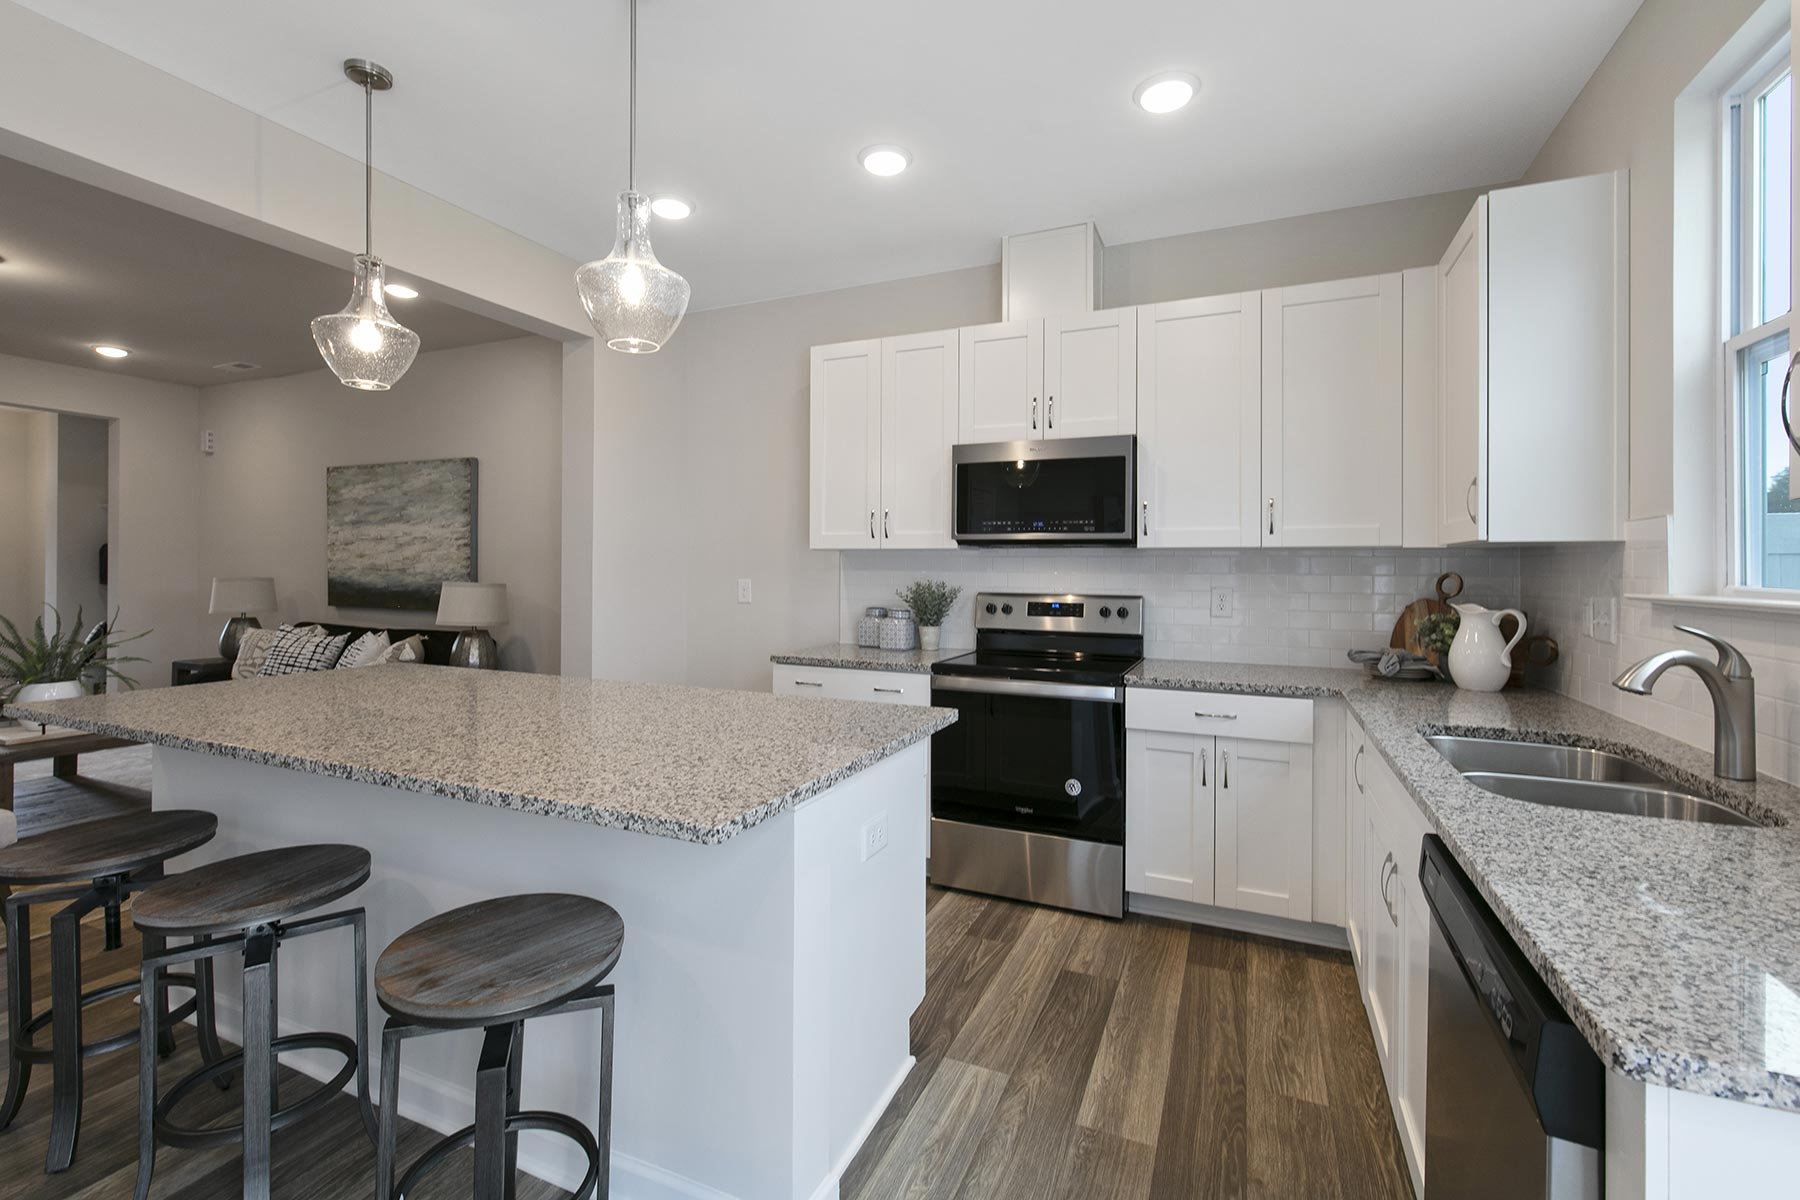 Clifton Plan Kitchen at Minglewood Townhomes in Garner North Carolina by Mattamy Homes